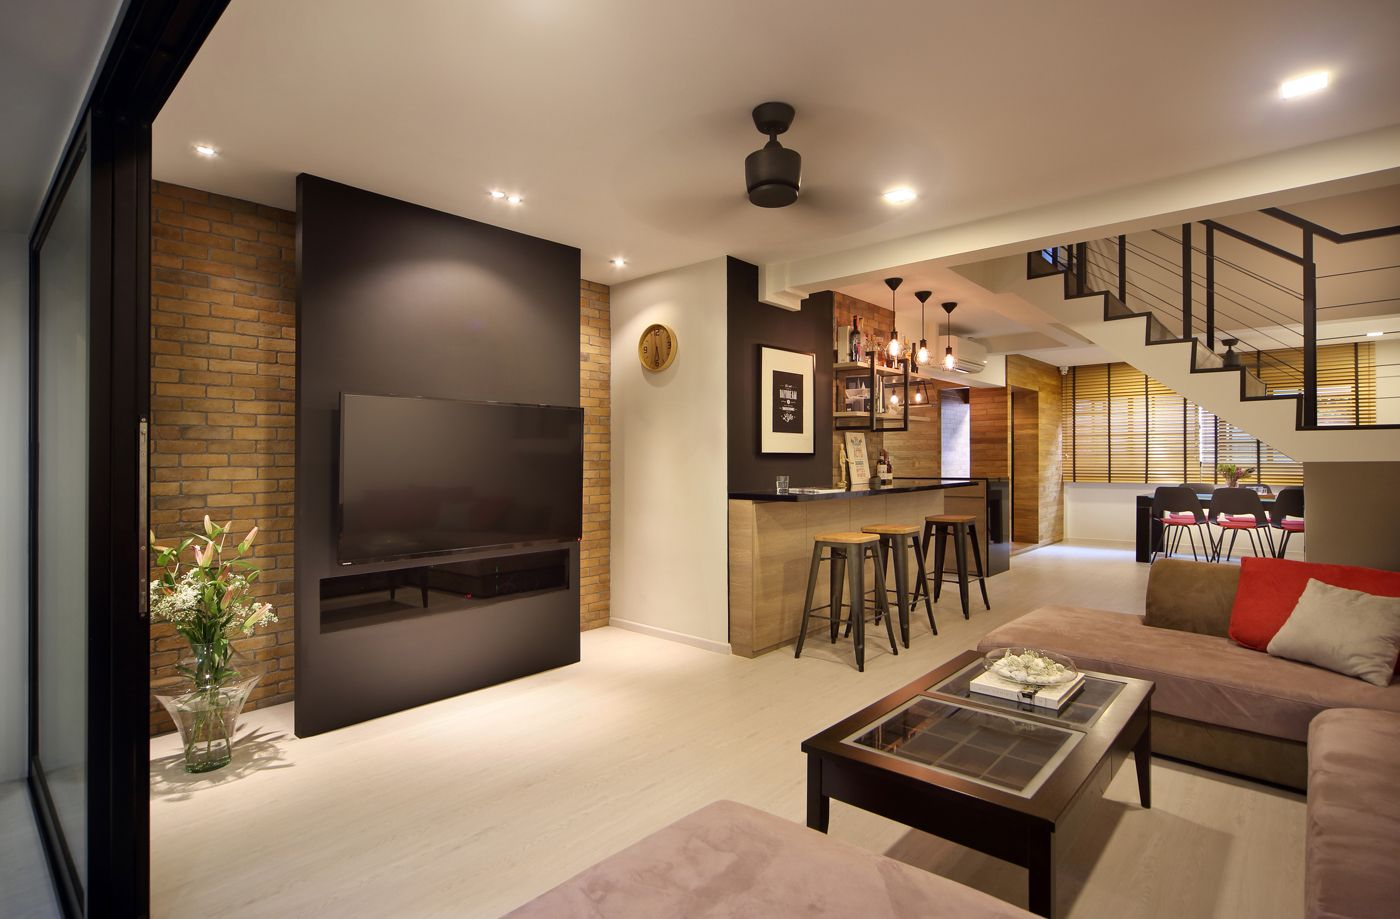 Pin By Peck Tan On Hdb Maisonettes Em Pinterest Red Brick Walls Modern Interiors And